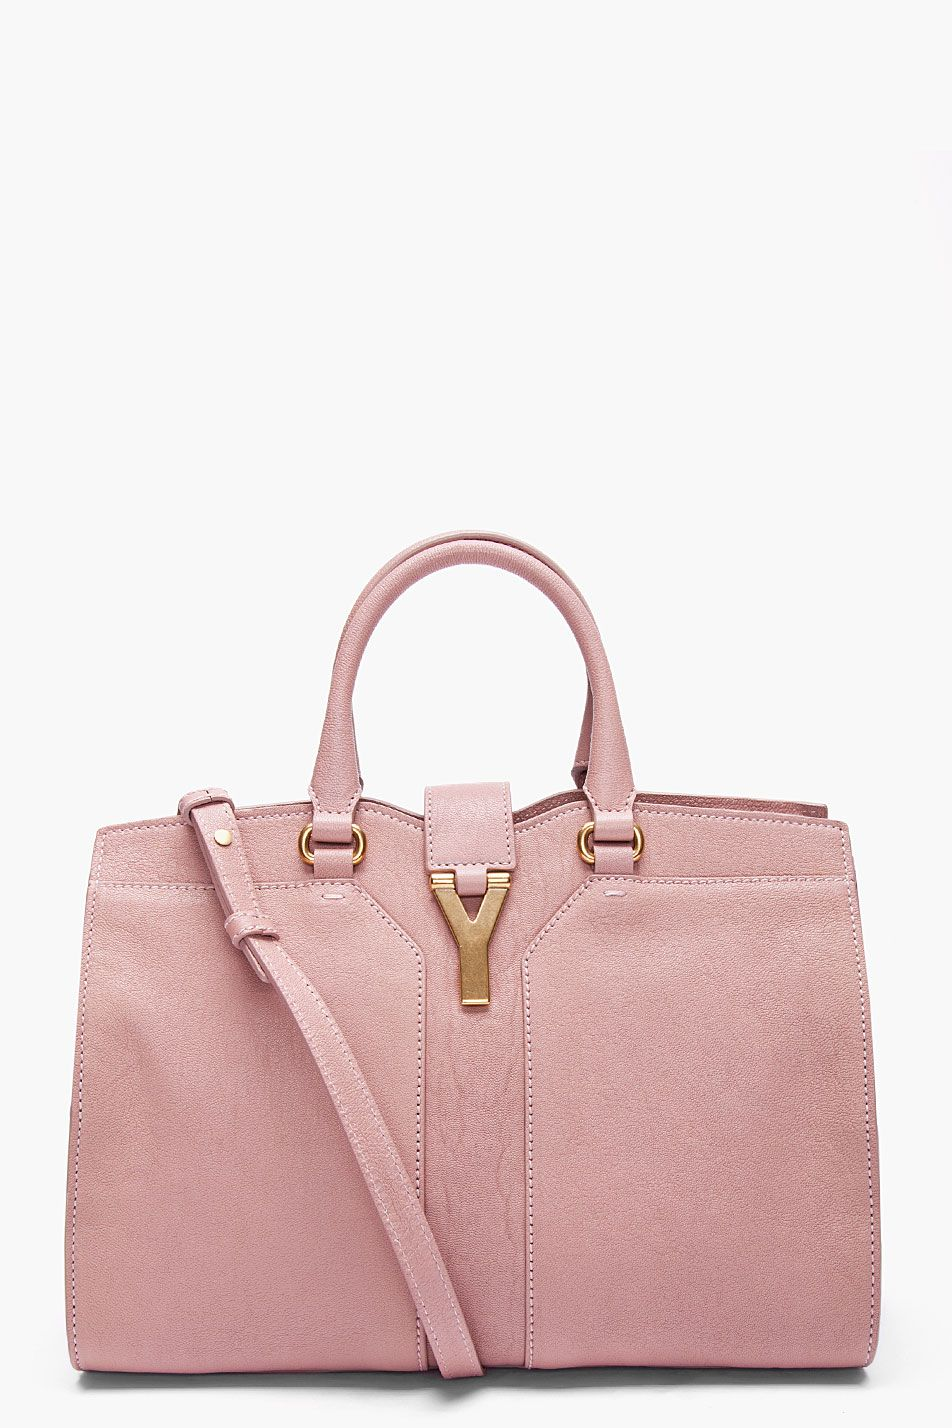 85076ff3b5 YVES SAINT LAURENT Mini Pastel Pink Cabas Chyc Bag... can i please have it.